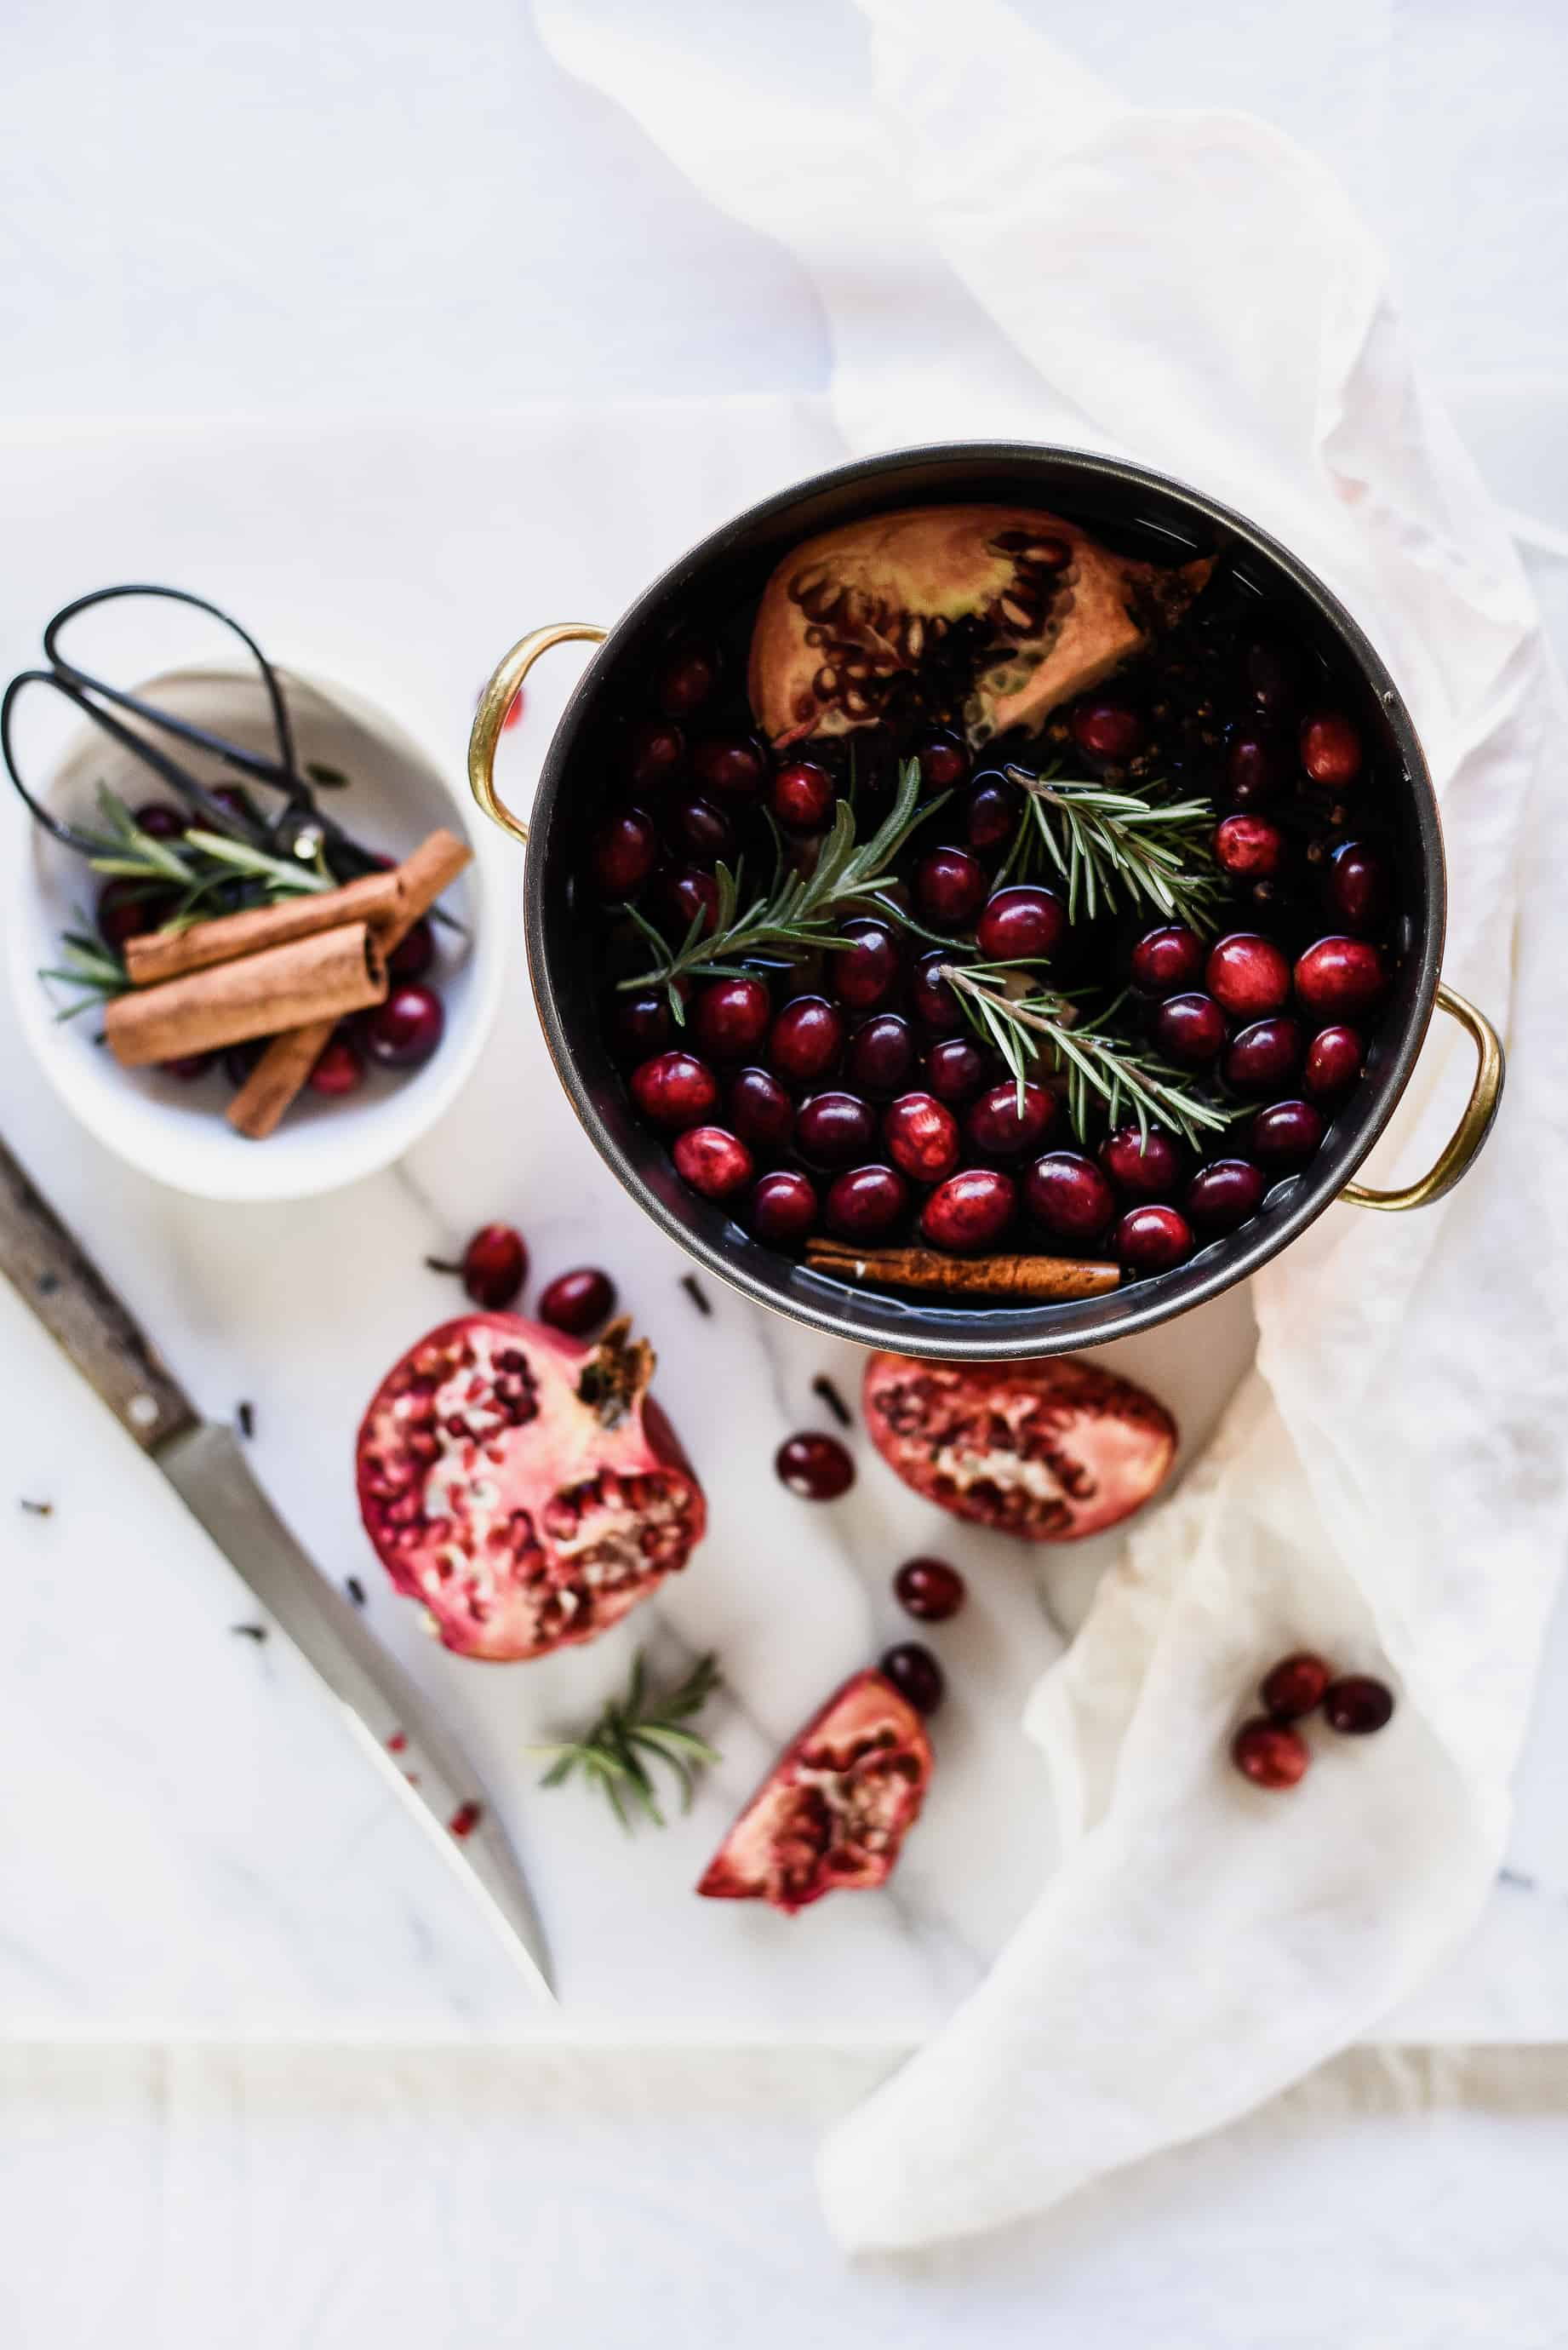 Use this easy recipe for homemade stove top potpourri to make your whole house smell like Christmas all year long!